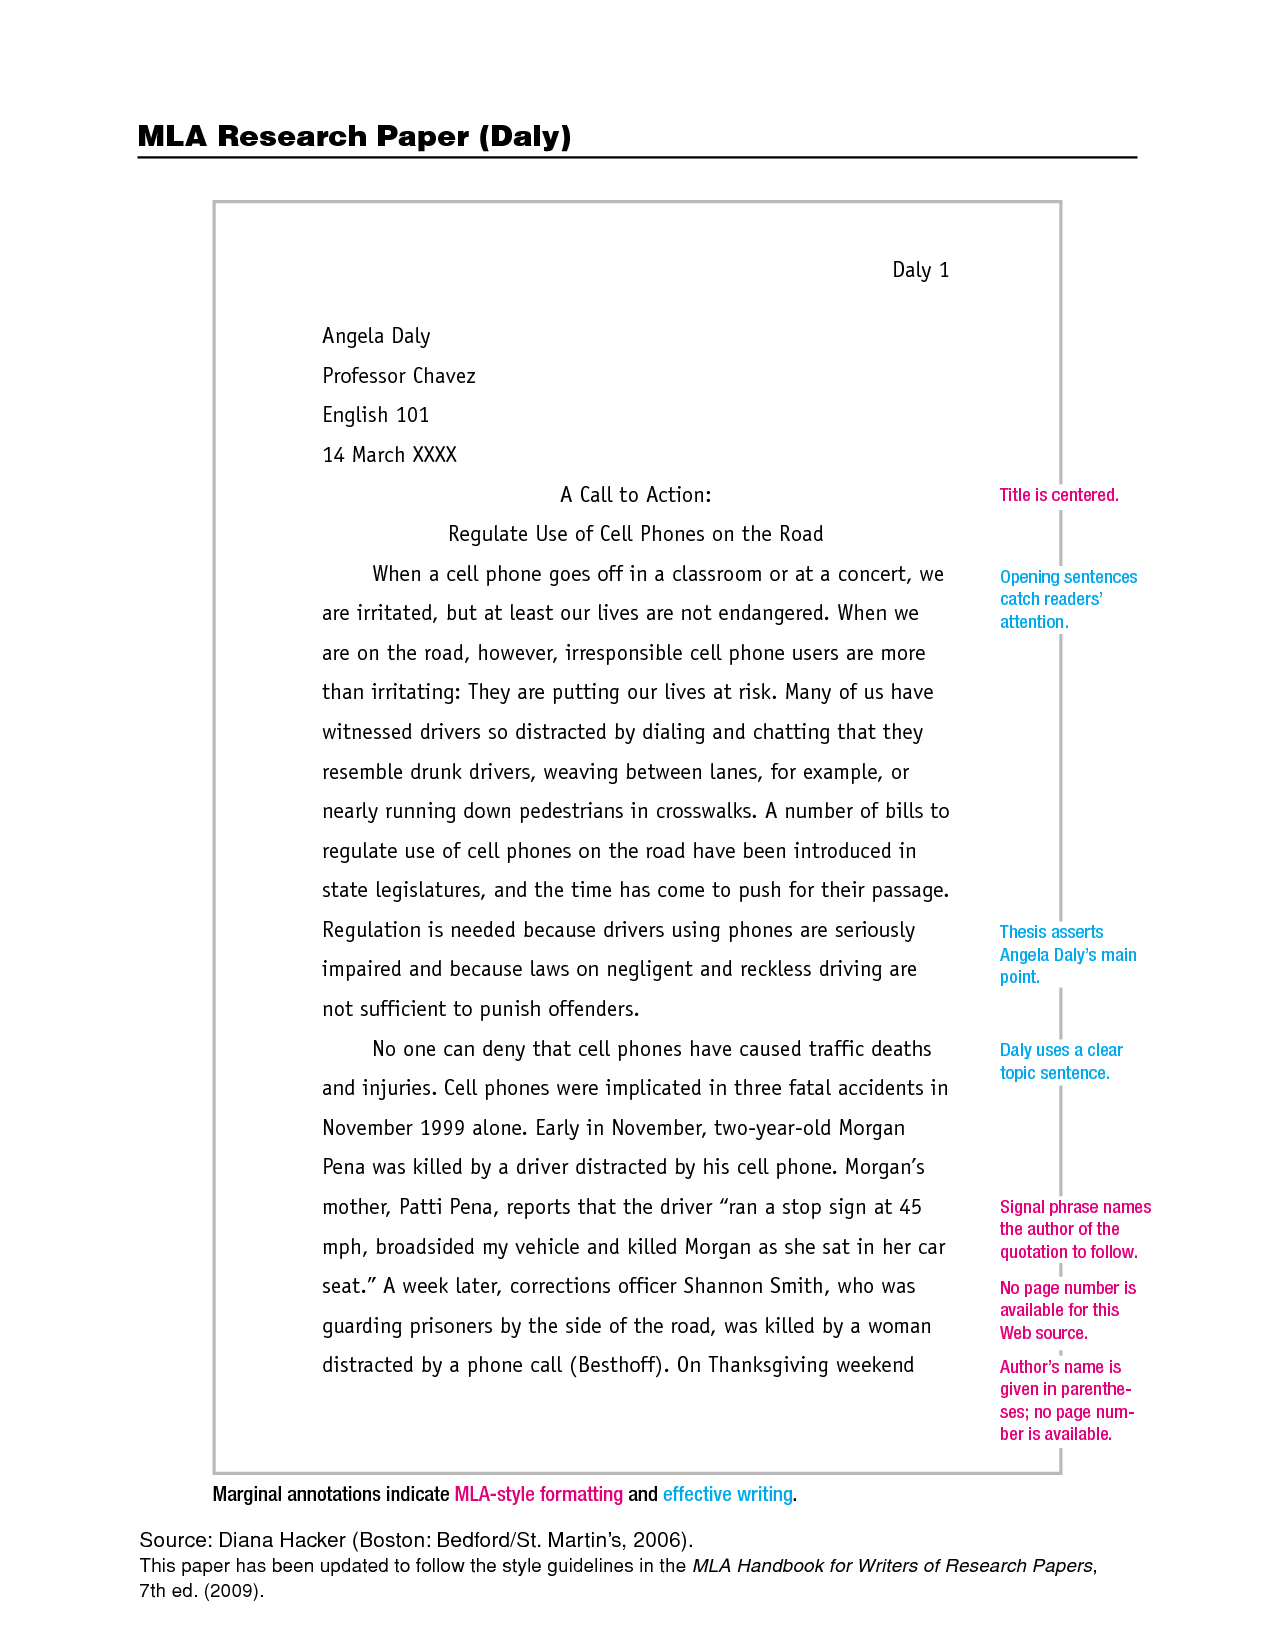 001 Research Paper Mla Format Of Writing Phenomenal A Style Example Works Cited Outline Sample For Full